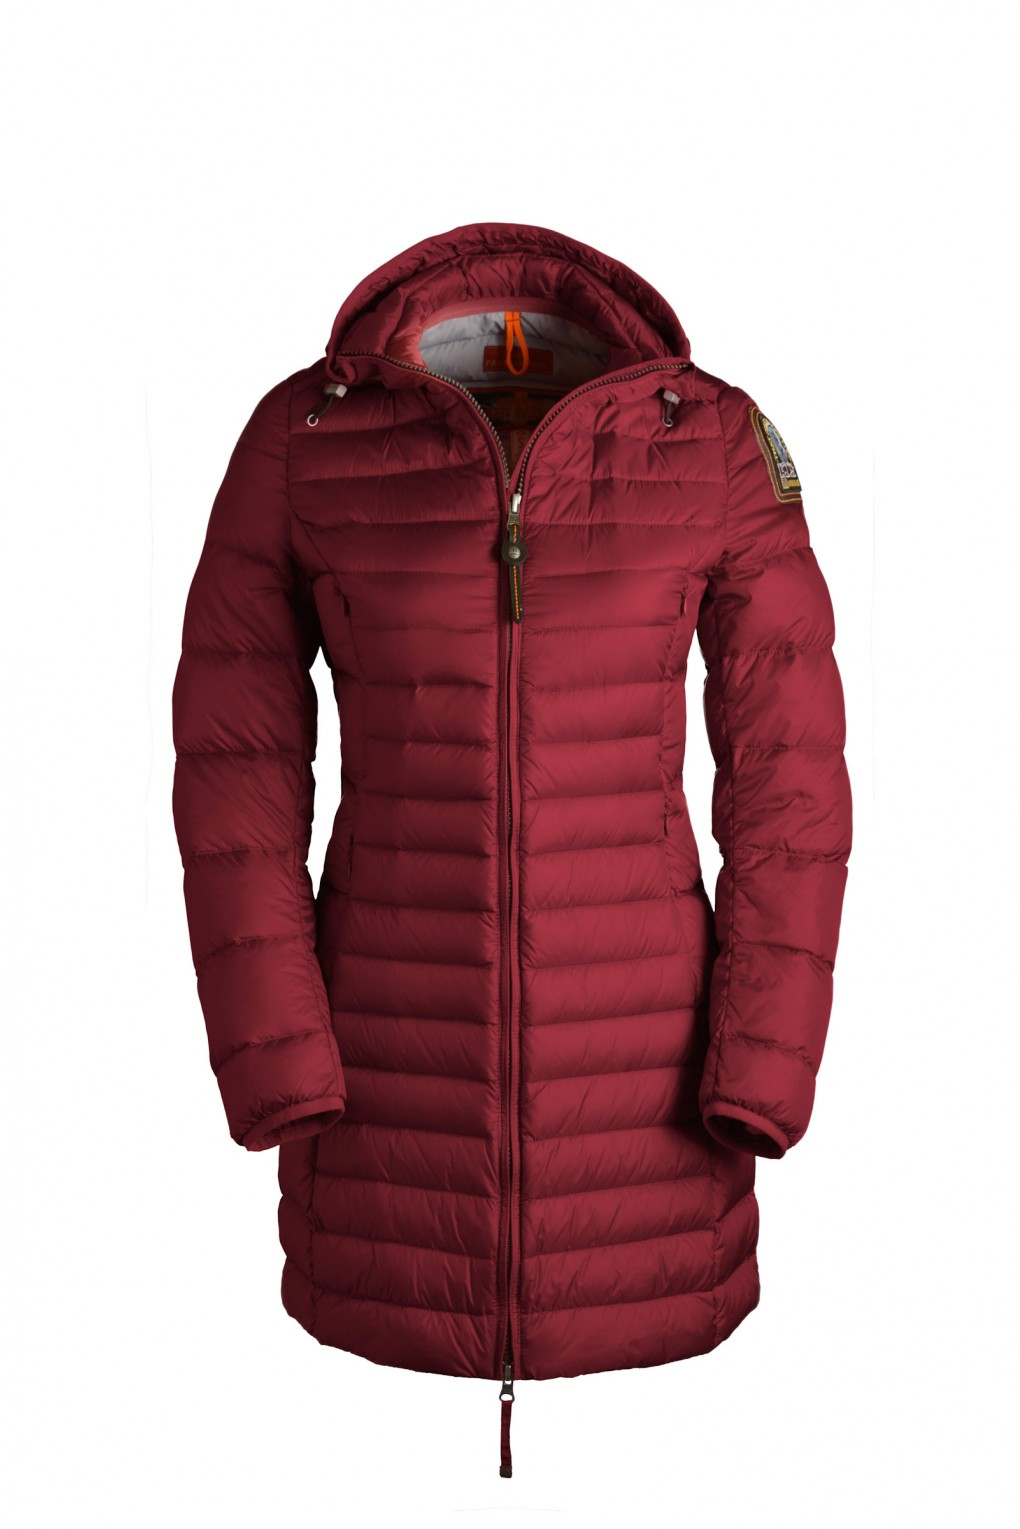 parajumpers IRENE6 woman outerwear Red